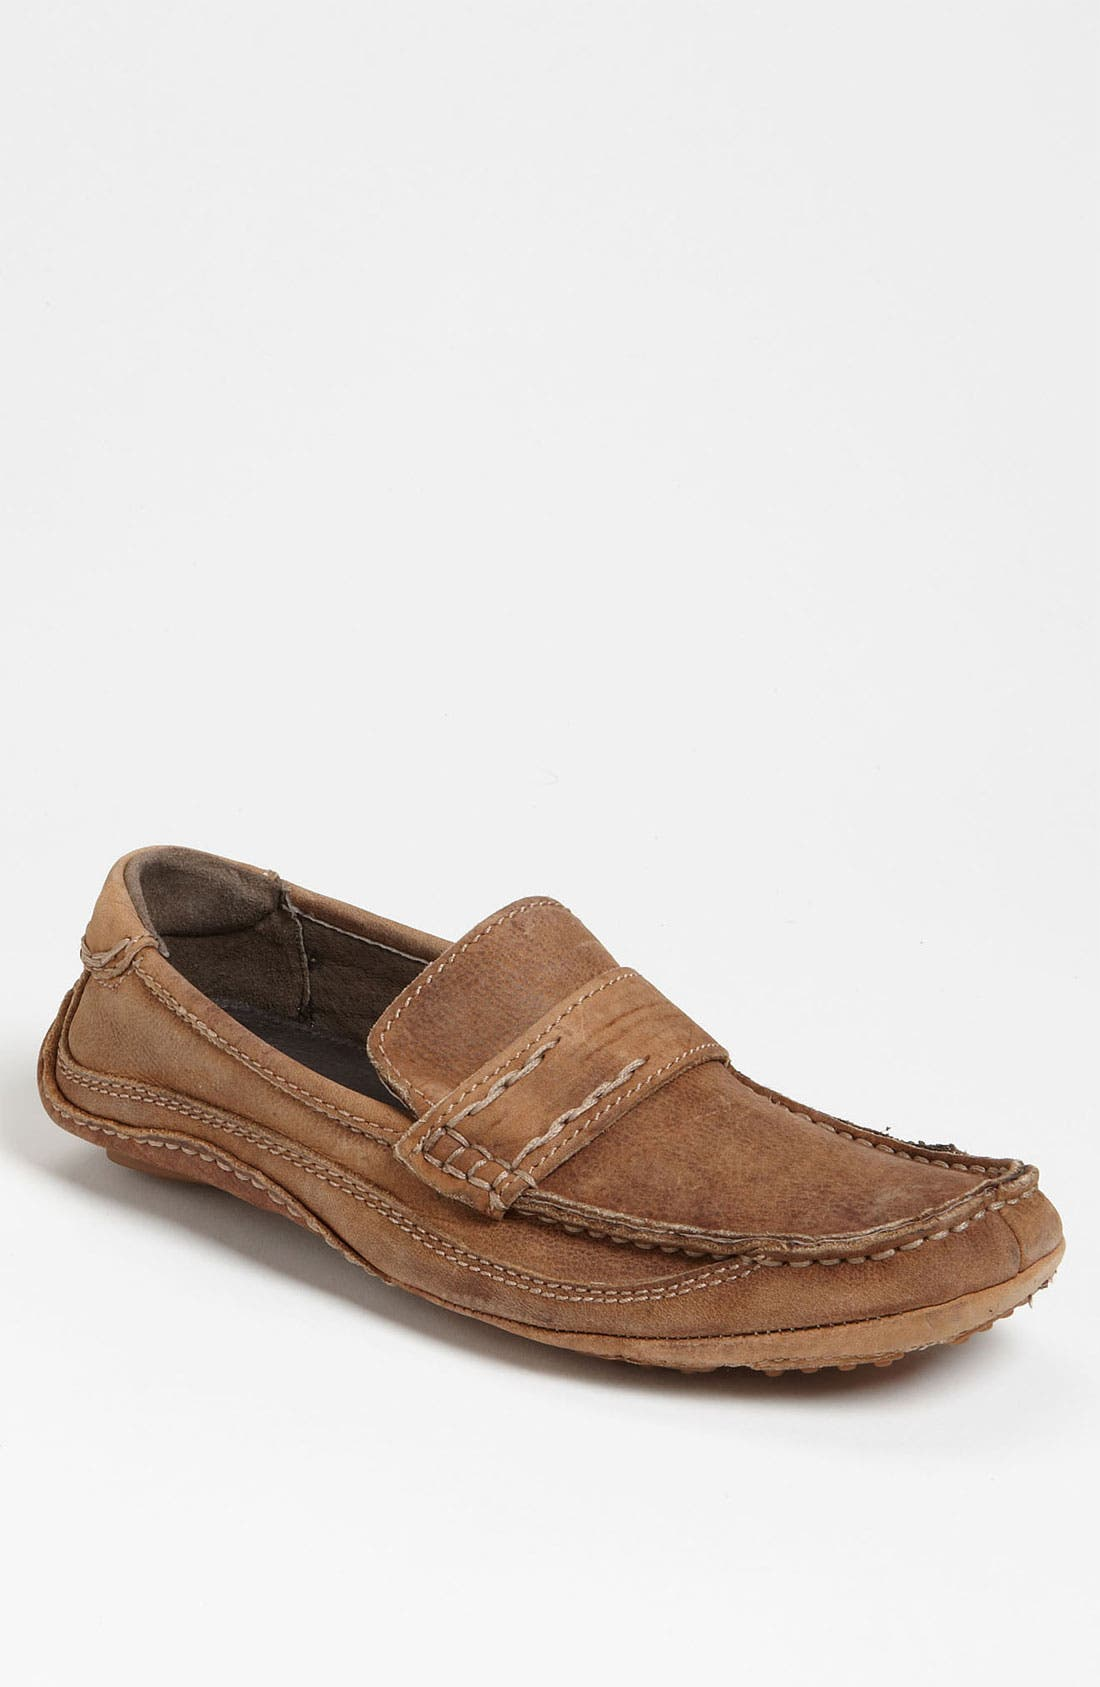 Main Image - Bed Stu 'Keeper' Driving Shoe (Online Only) (Men)